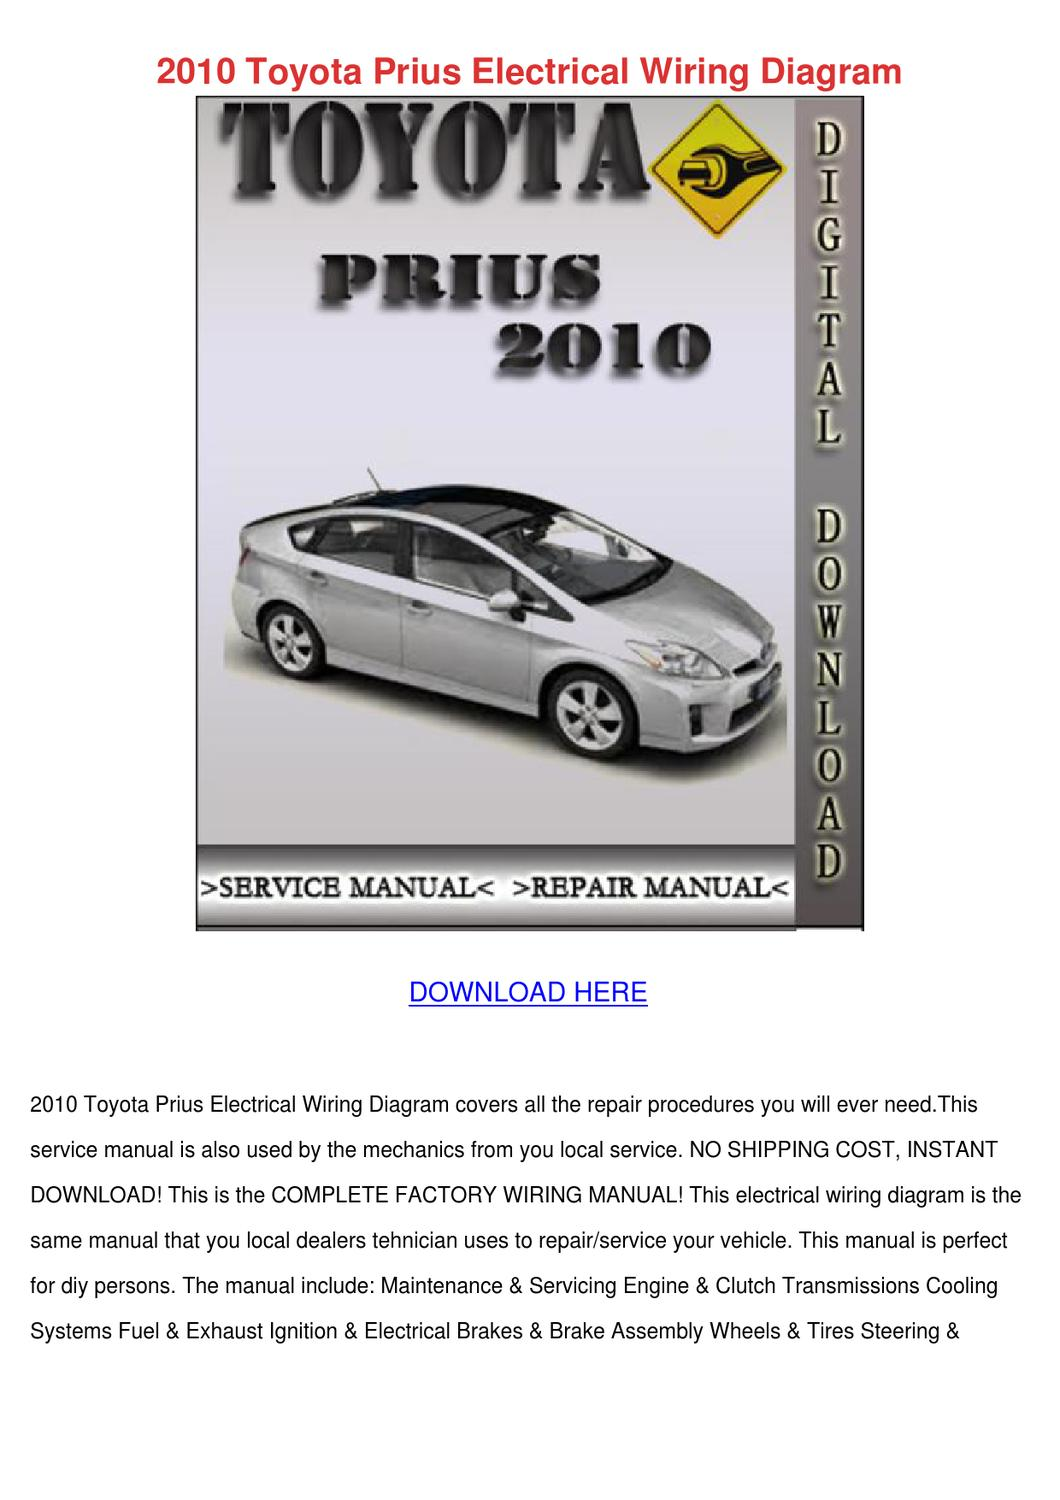 2010 Toyota Prius Electrical Wiring Diagram By Wardtoledo